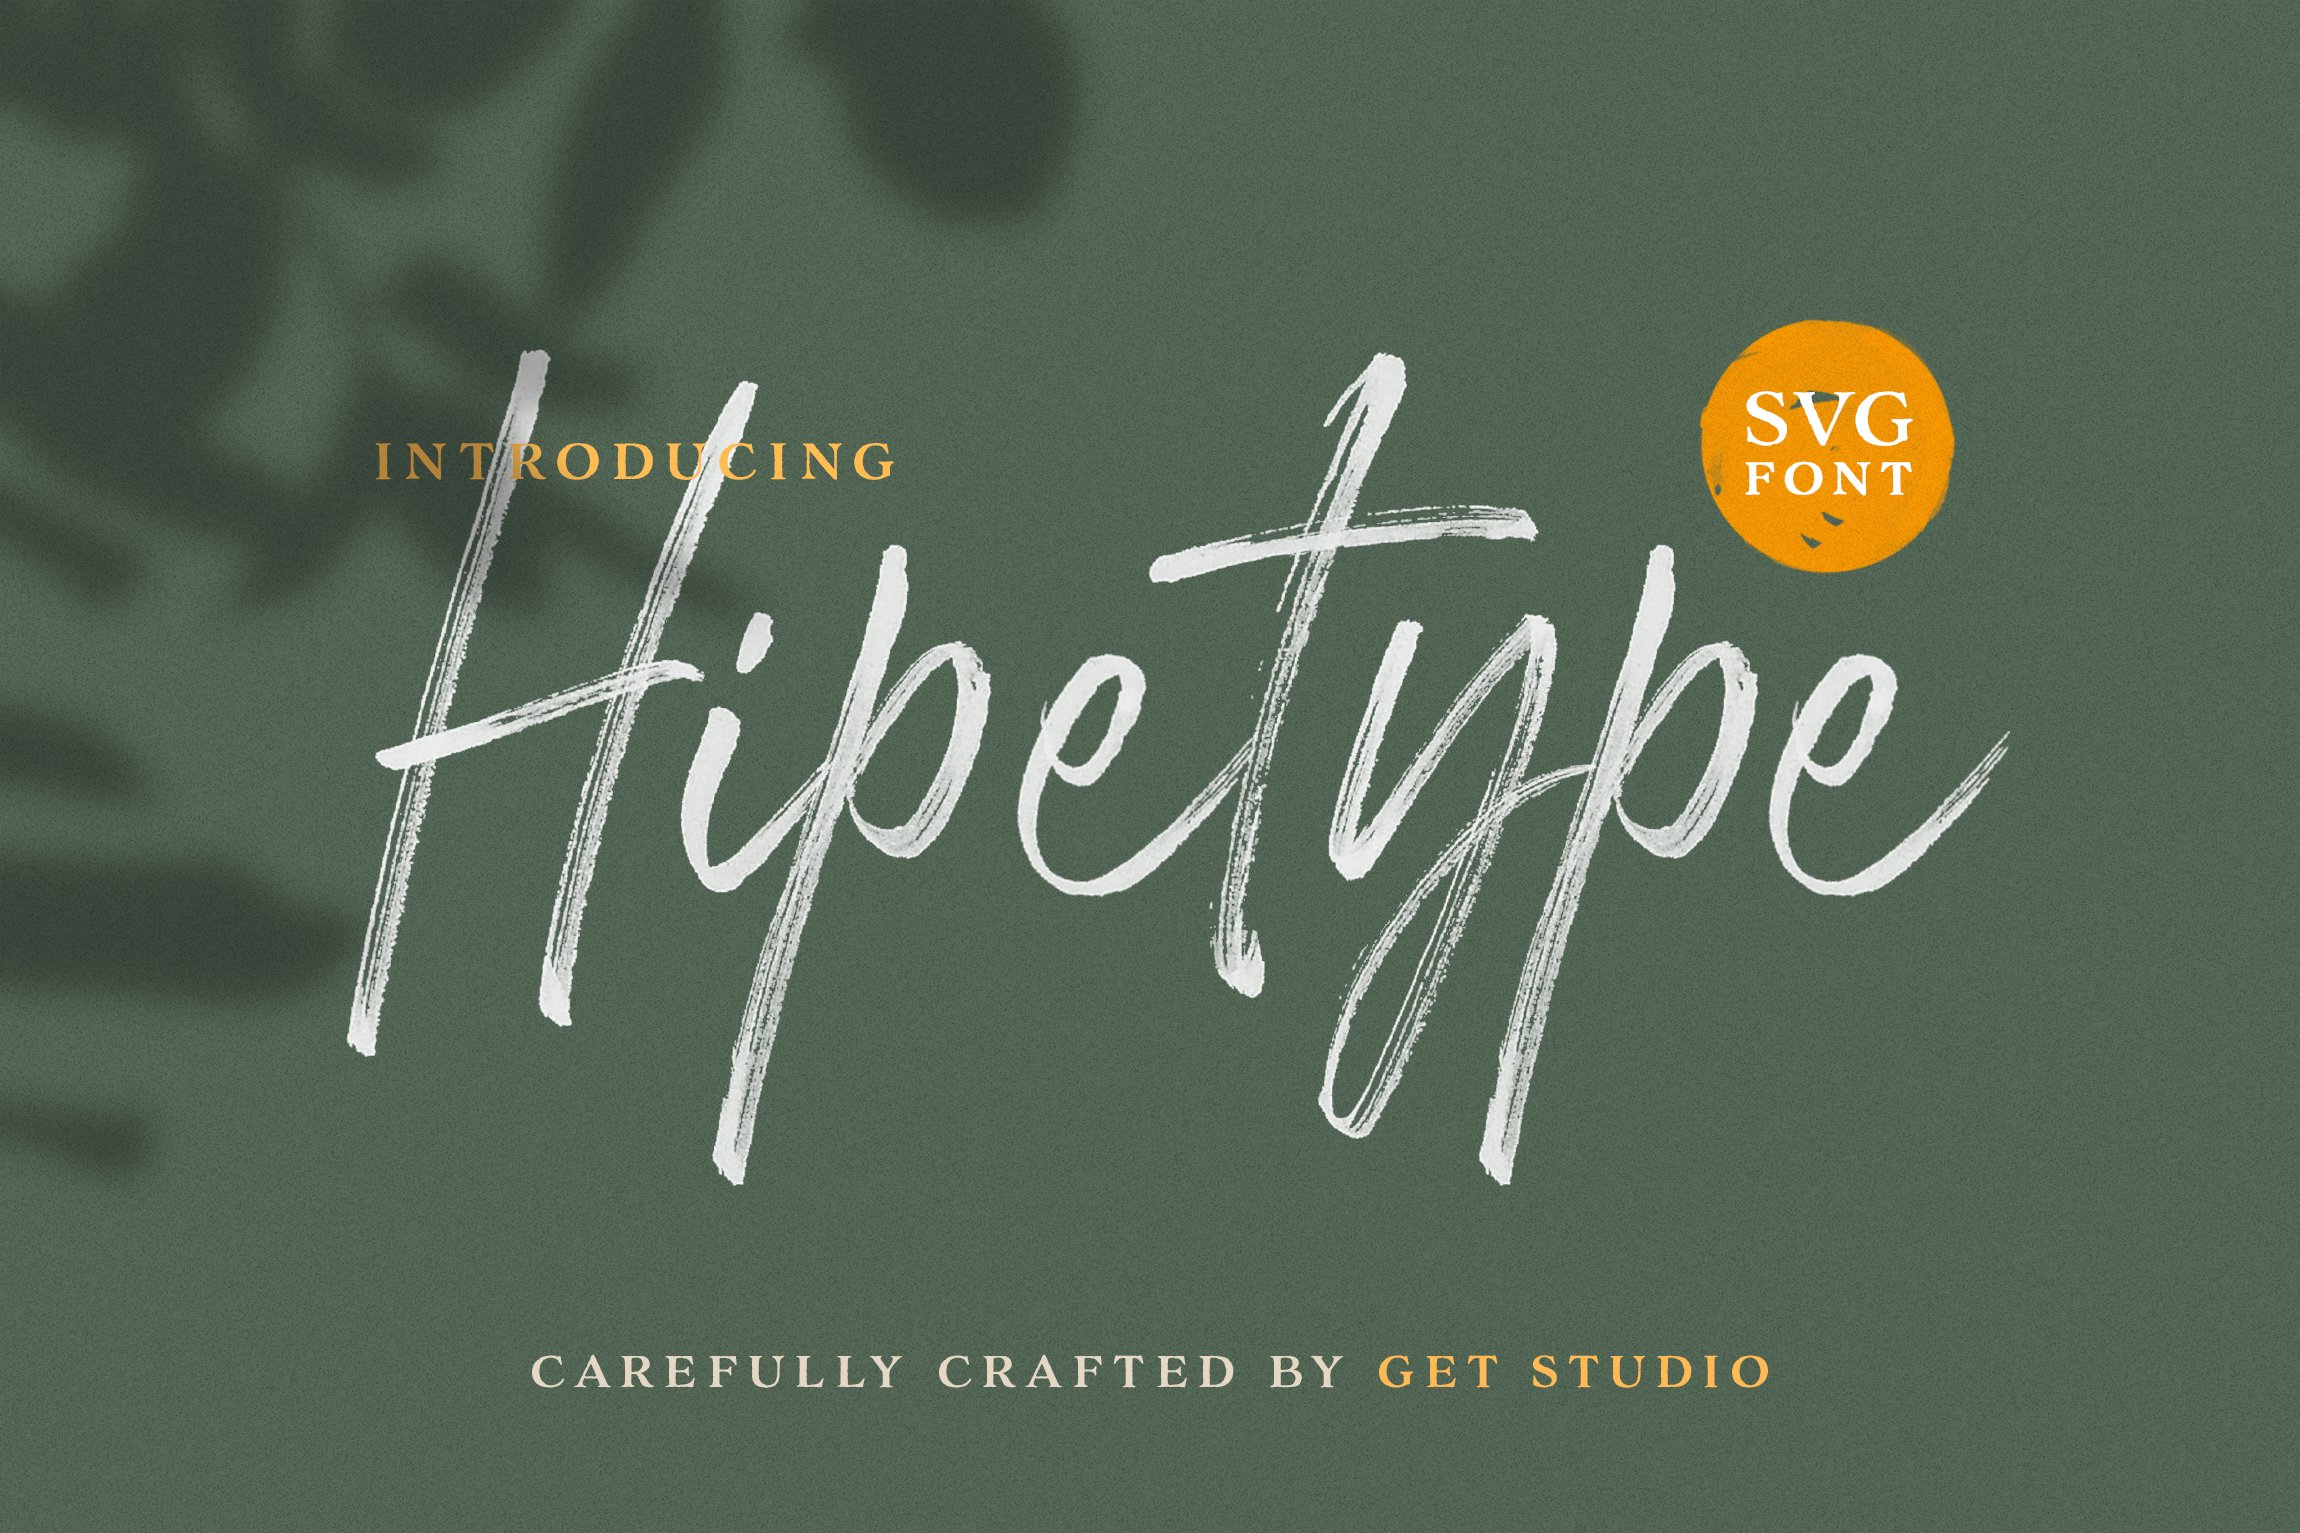 Hipetype SVG Font example image 1